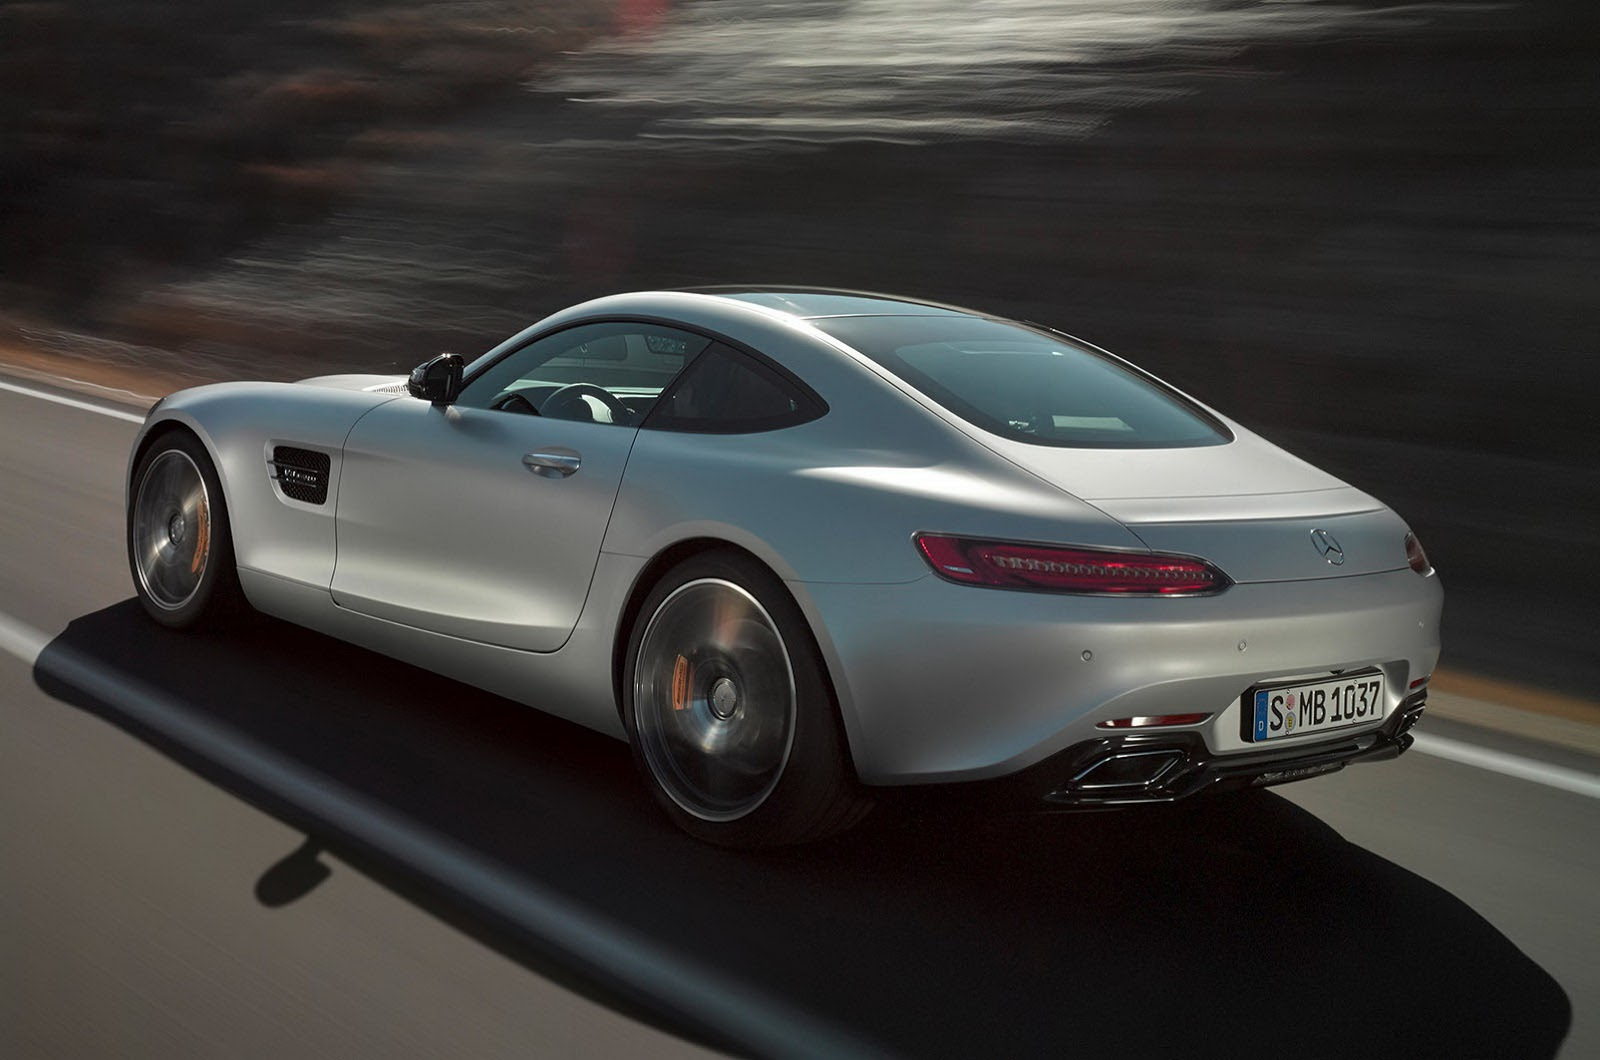 All new 2016 mercedes benz amg gt images details 32 for All new mercedes benz